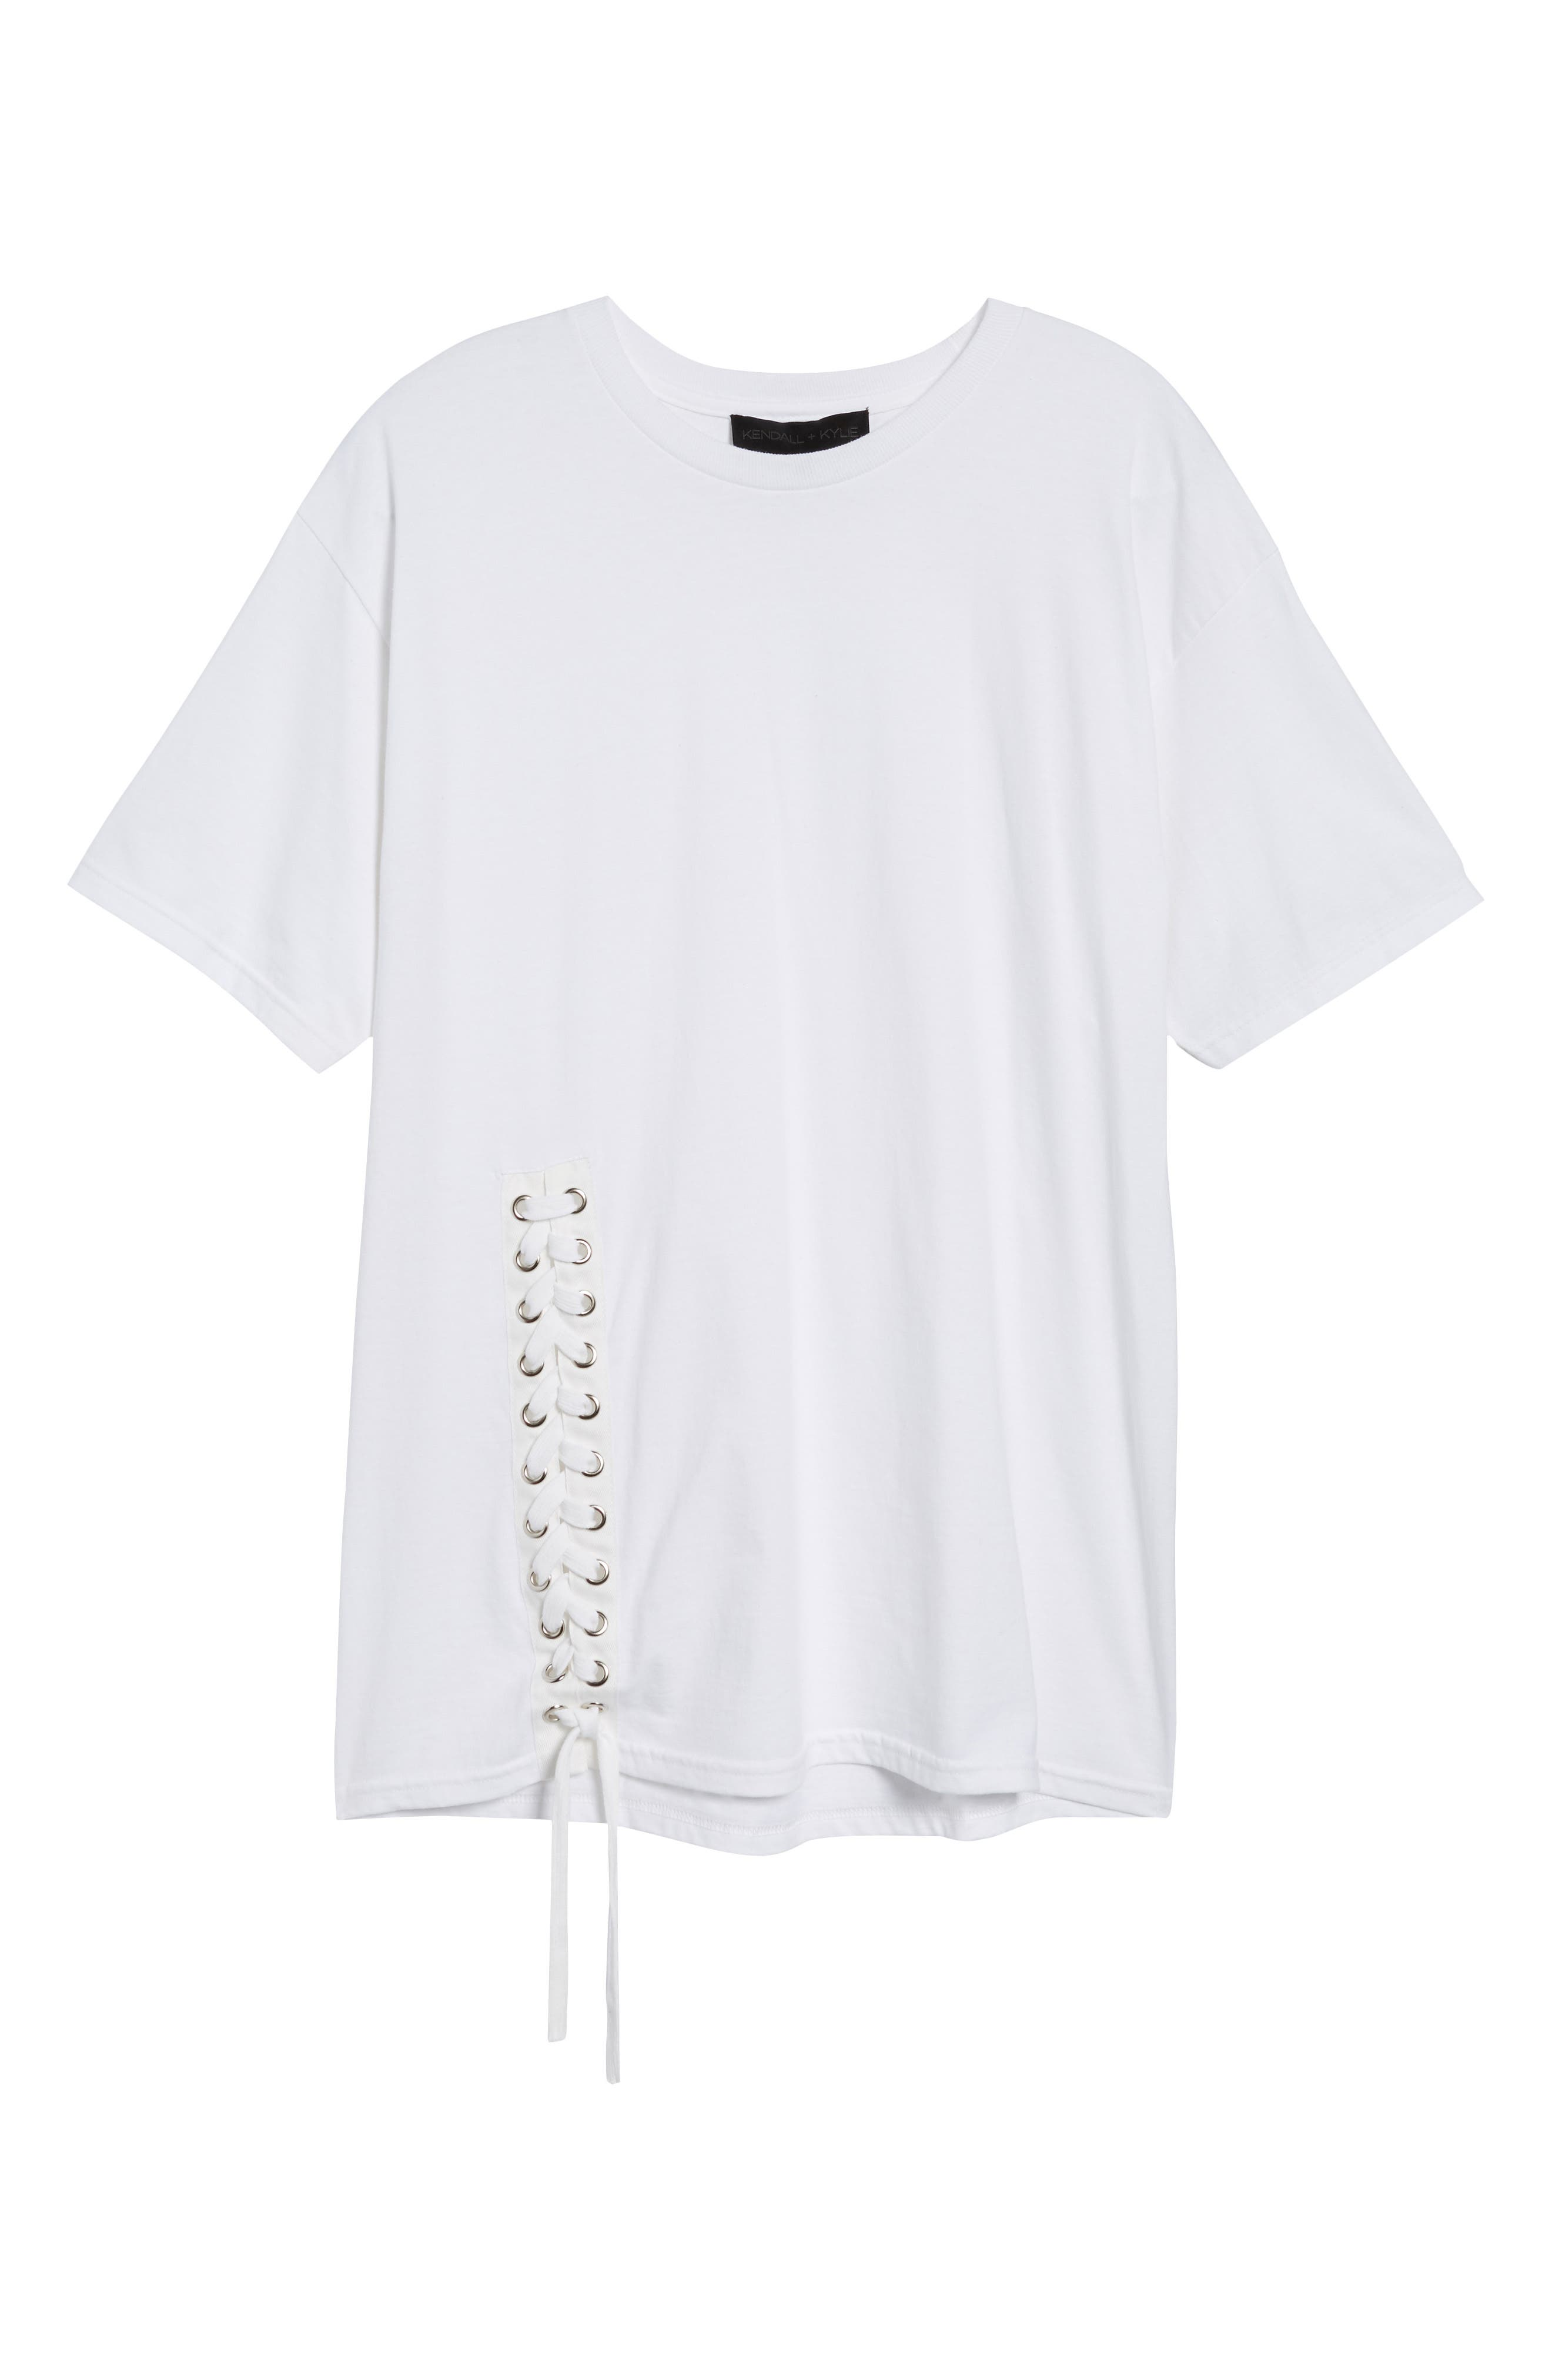 Lace-Up Tee,                             Alternate thumbnail 6, color,                             102